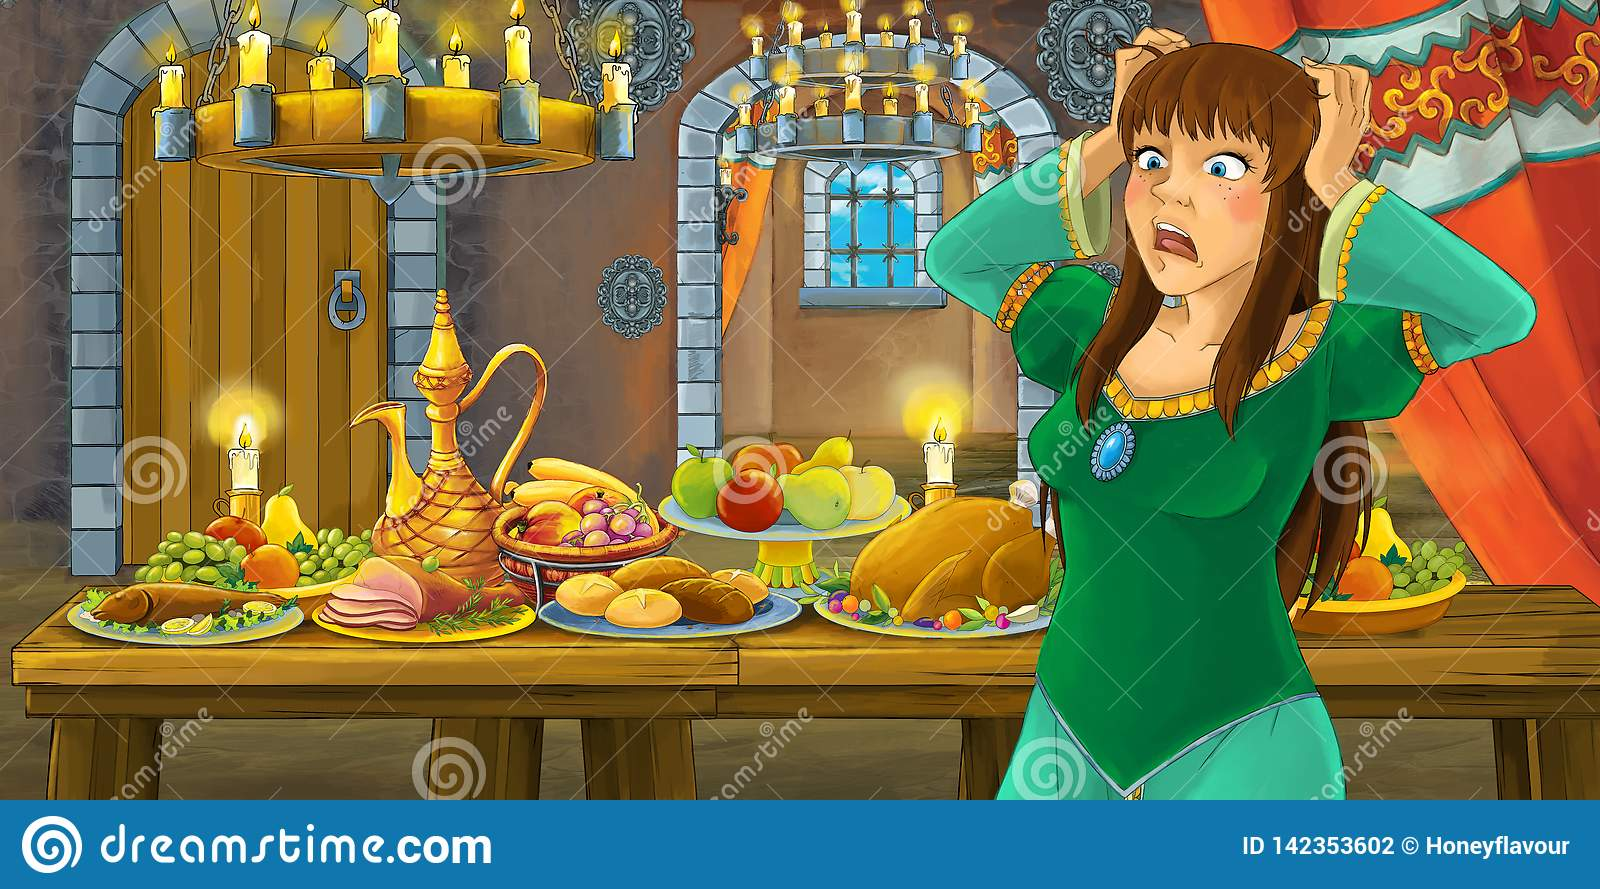 Cartoon fairy tale with princess in the castle by the table full of food looking and smiling